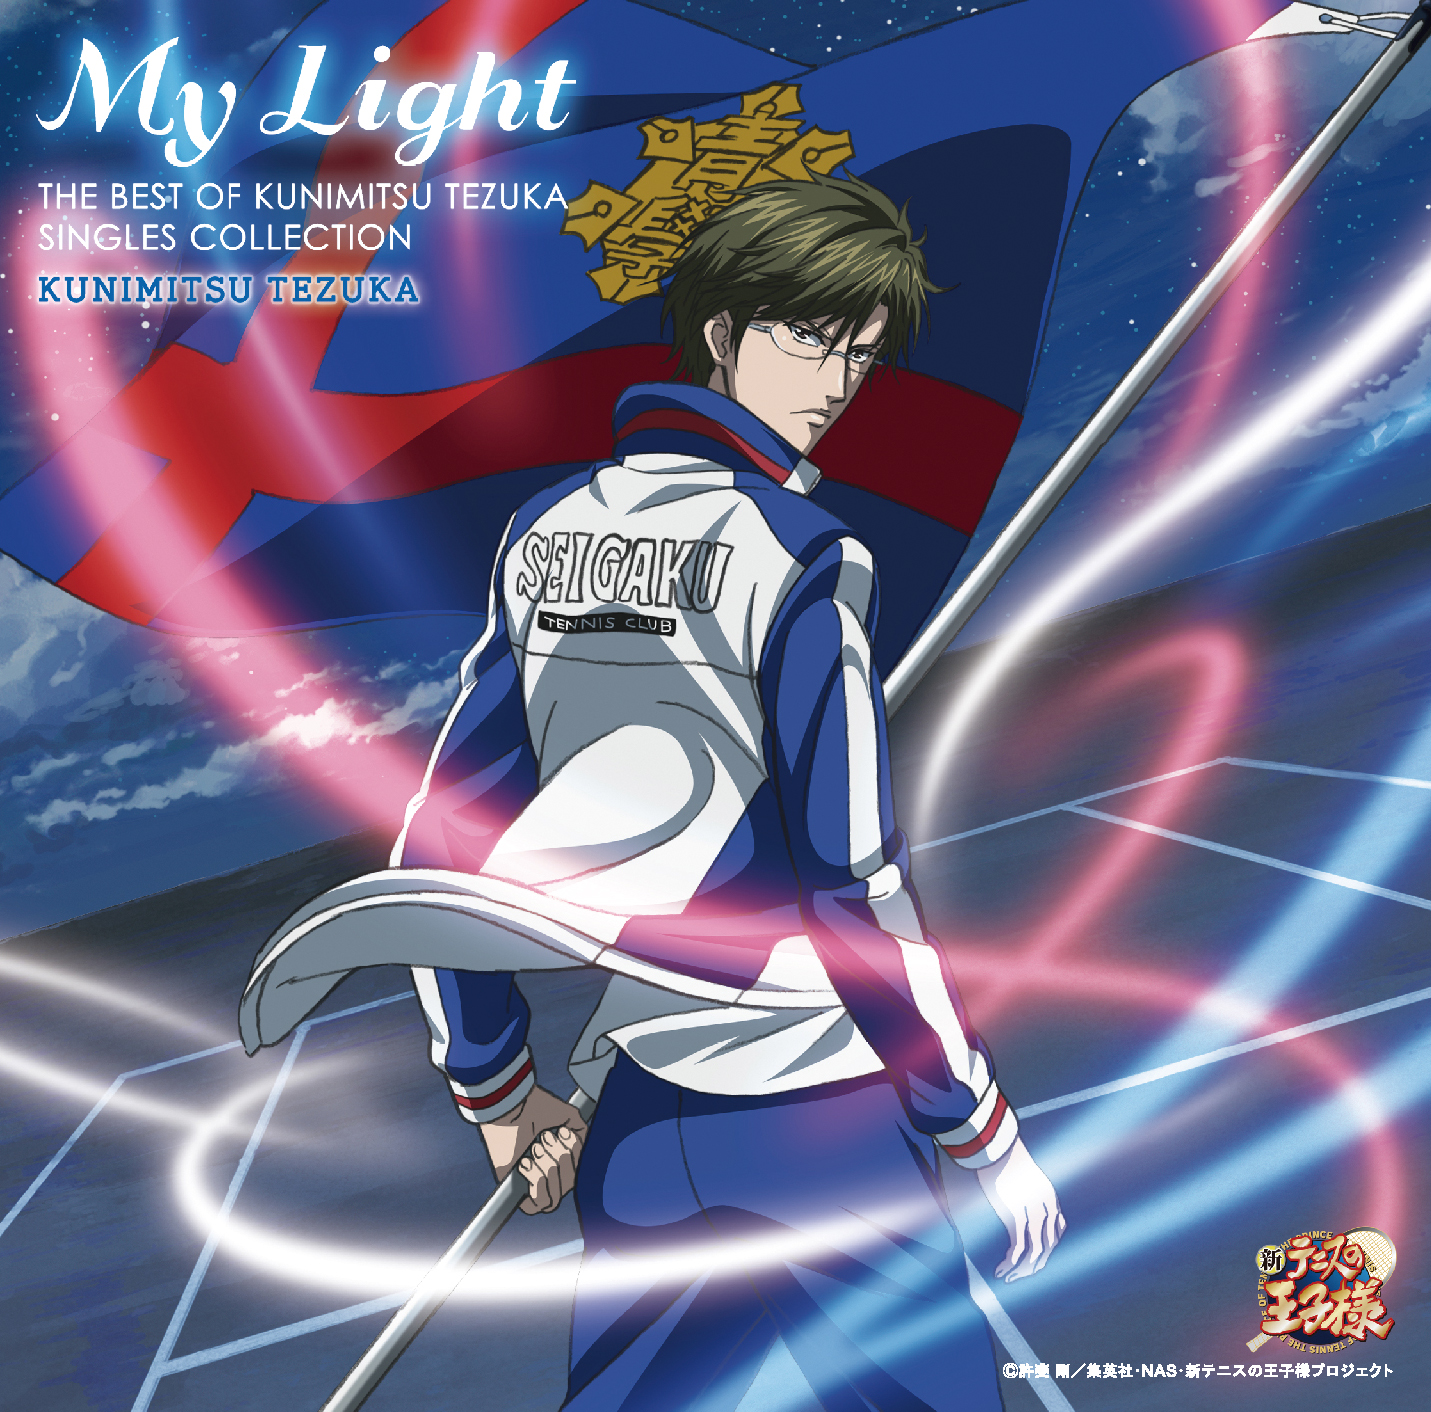 「My Light-THE BEST OF KUNIMITSU TEZUKA SINGLES COLLECTION-(通常盤)」手塚国光